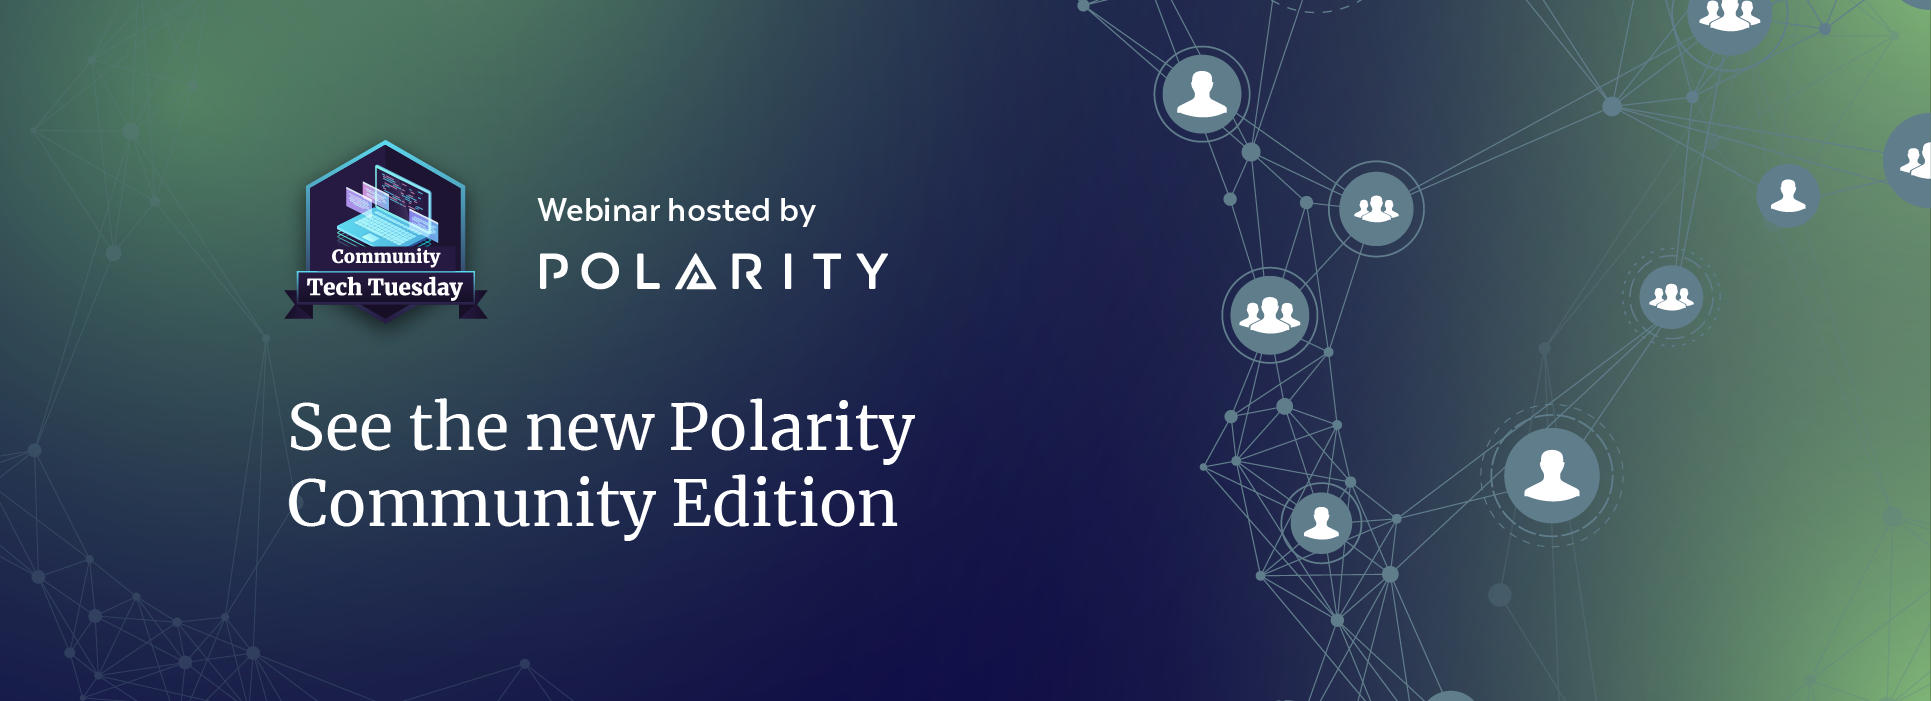 See the new Polarity Community Editioncover image